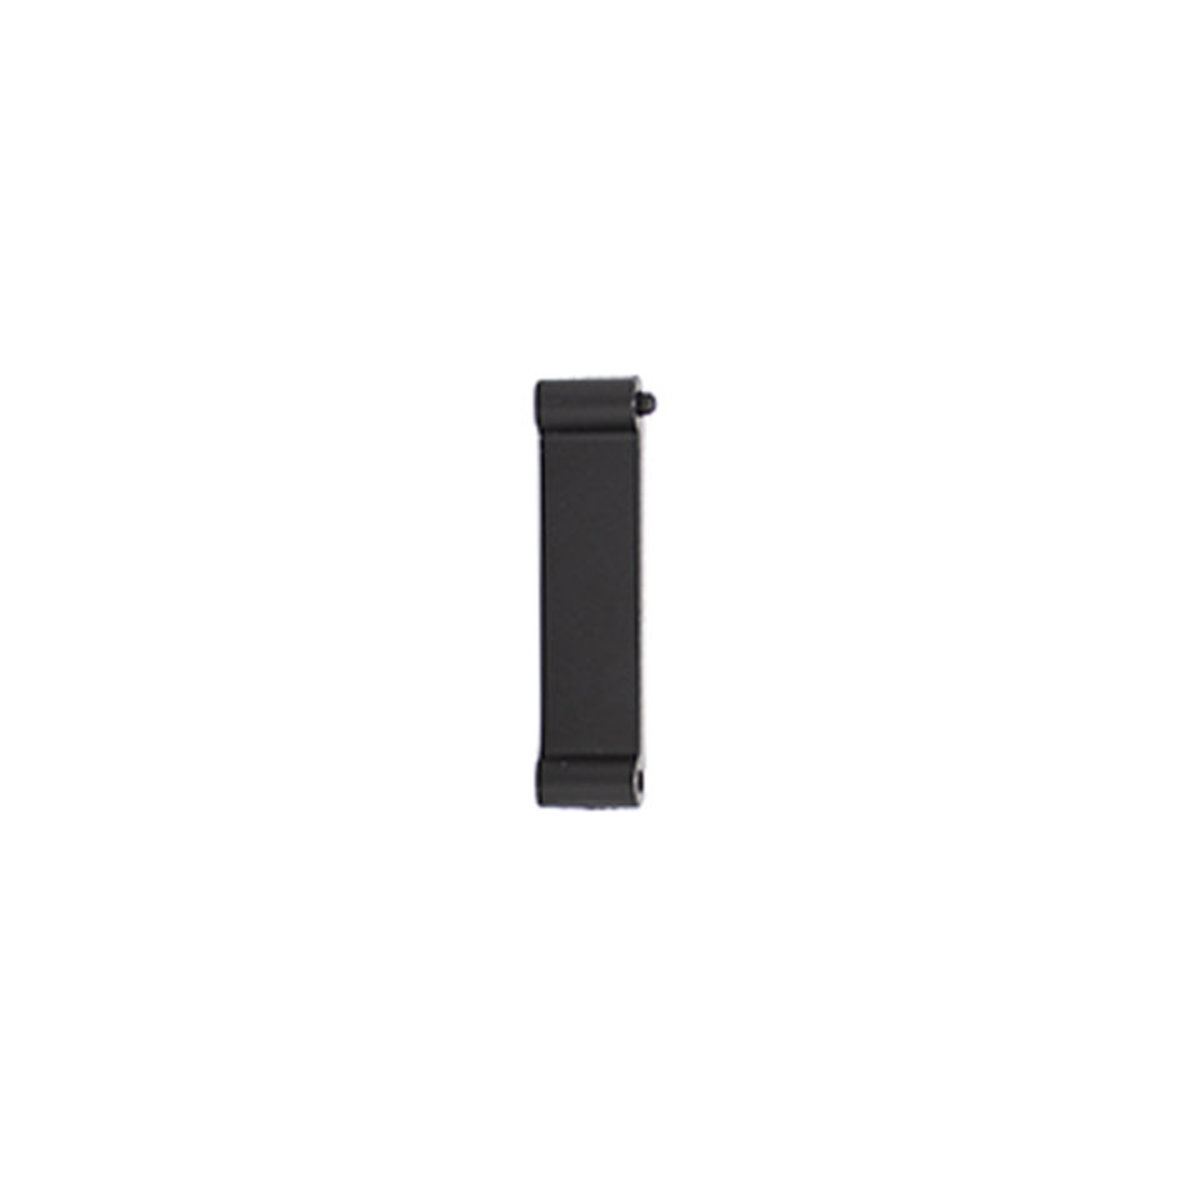 View larger image of Valken Trigger Guard for M4 / M16 Series Airsoft Rifles